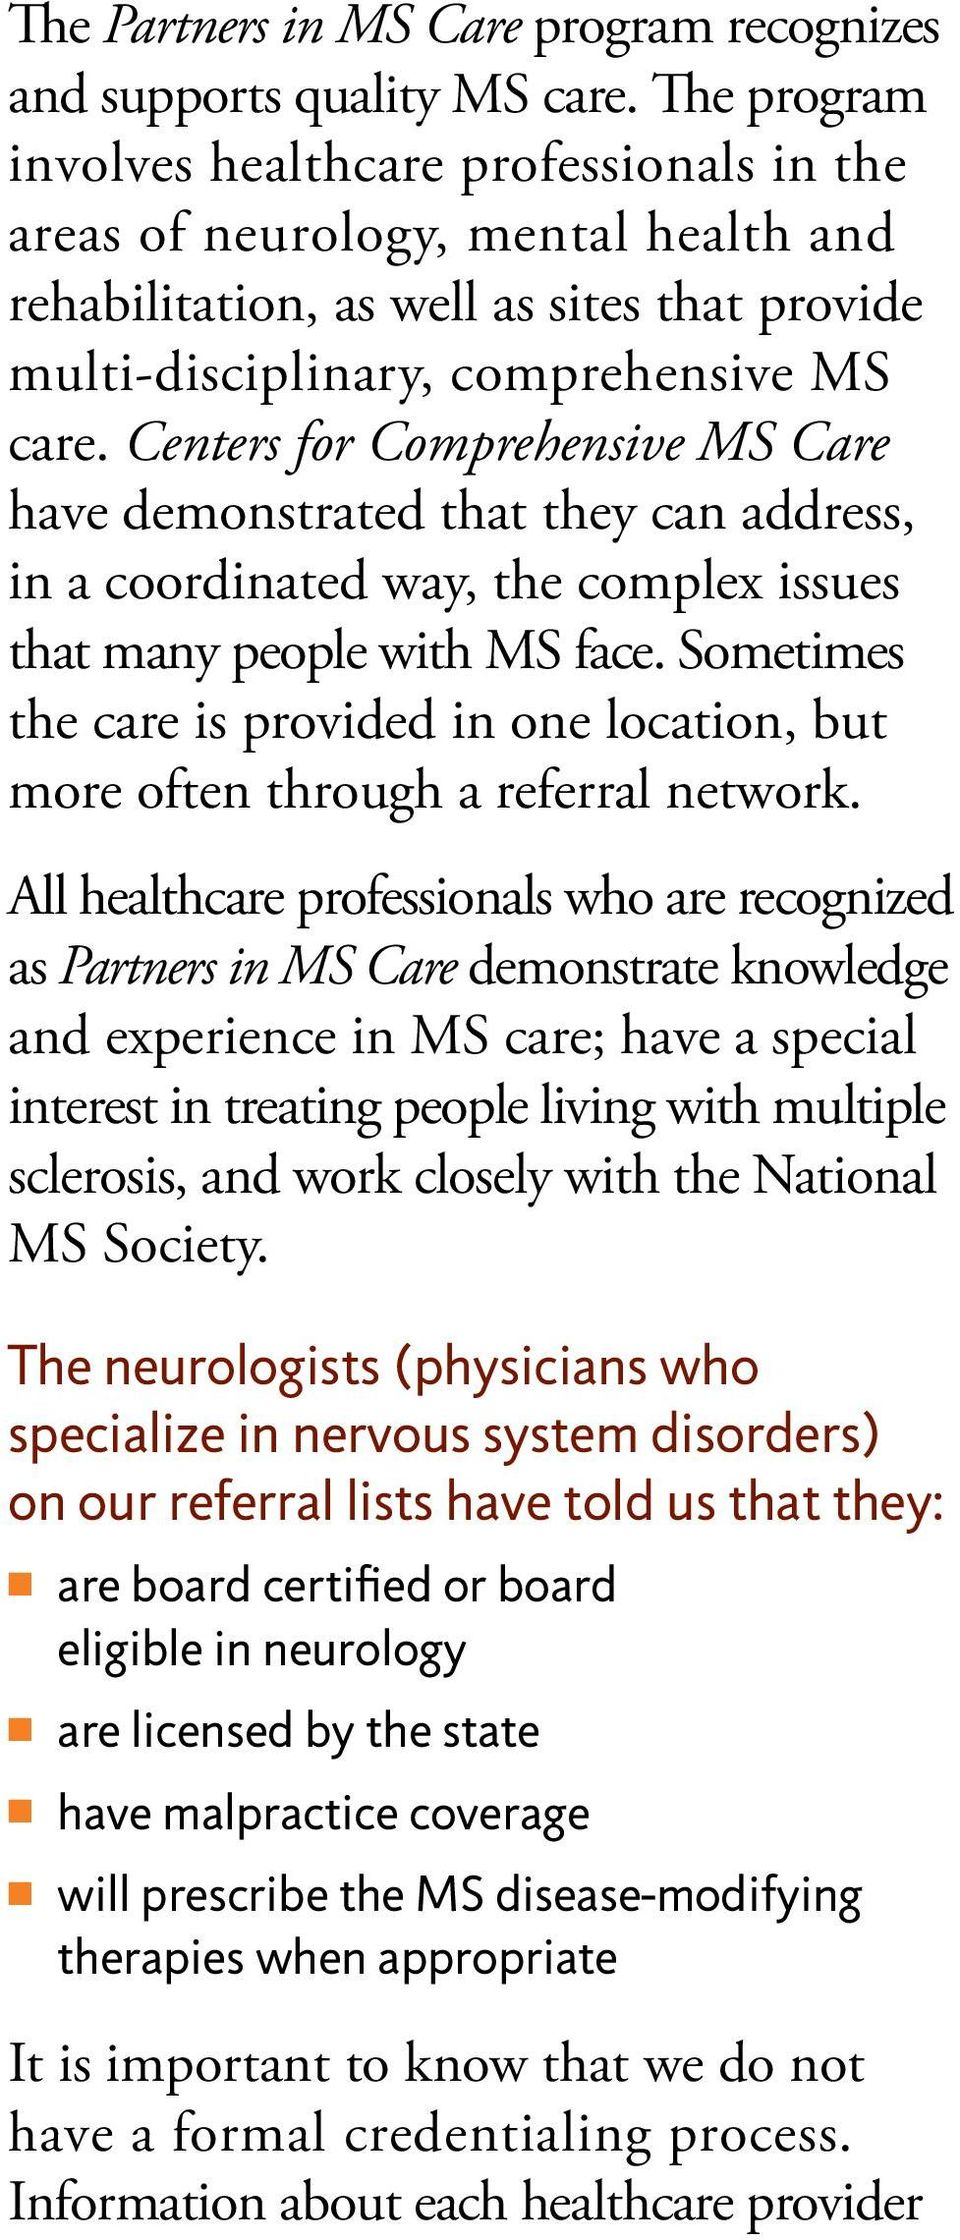 Centers for Comprehensive MS Care have demonstrated that they can address, in a coordinated way, the complex issues that many people with MS face.